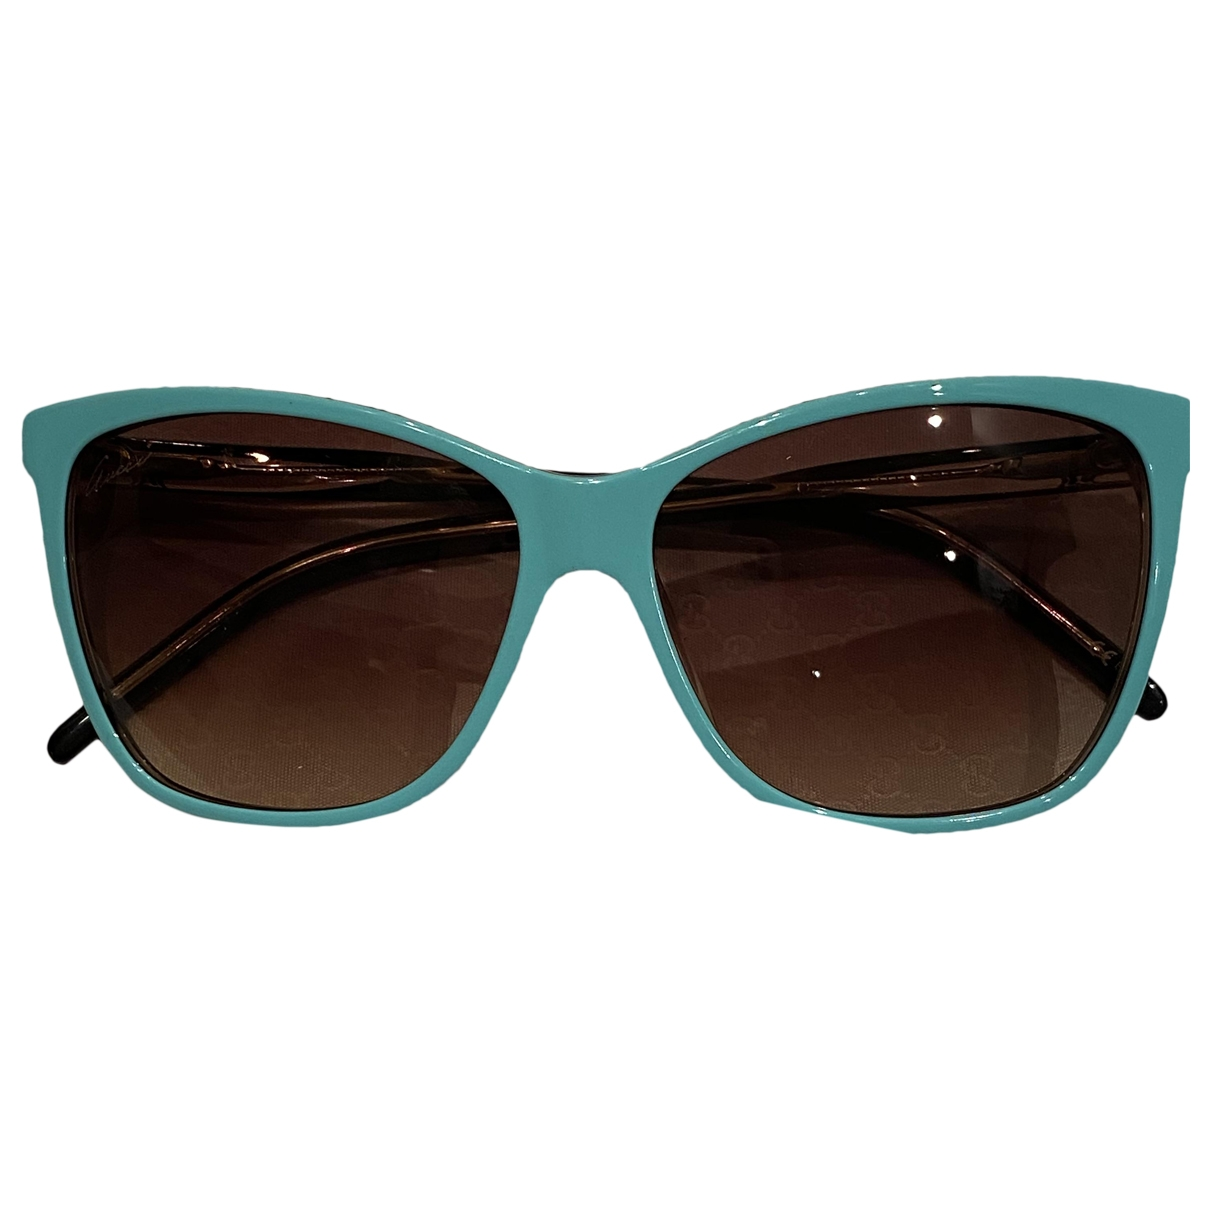 Gucci \N Turquoise Sunglasses for Women \N